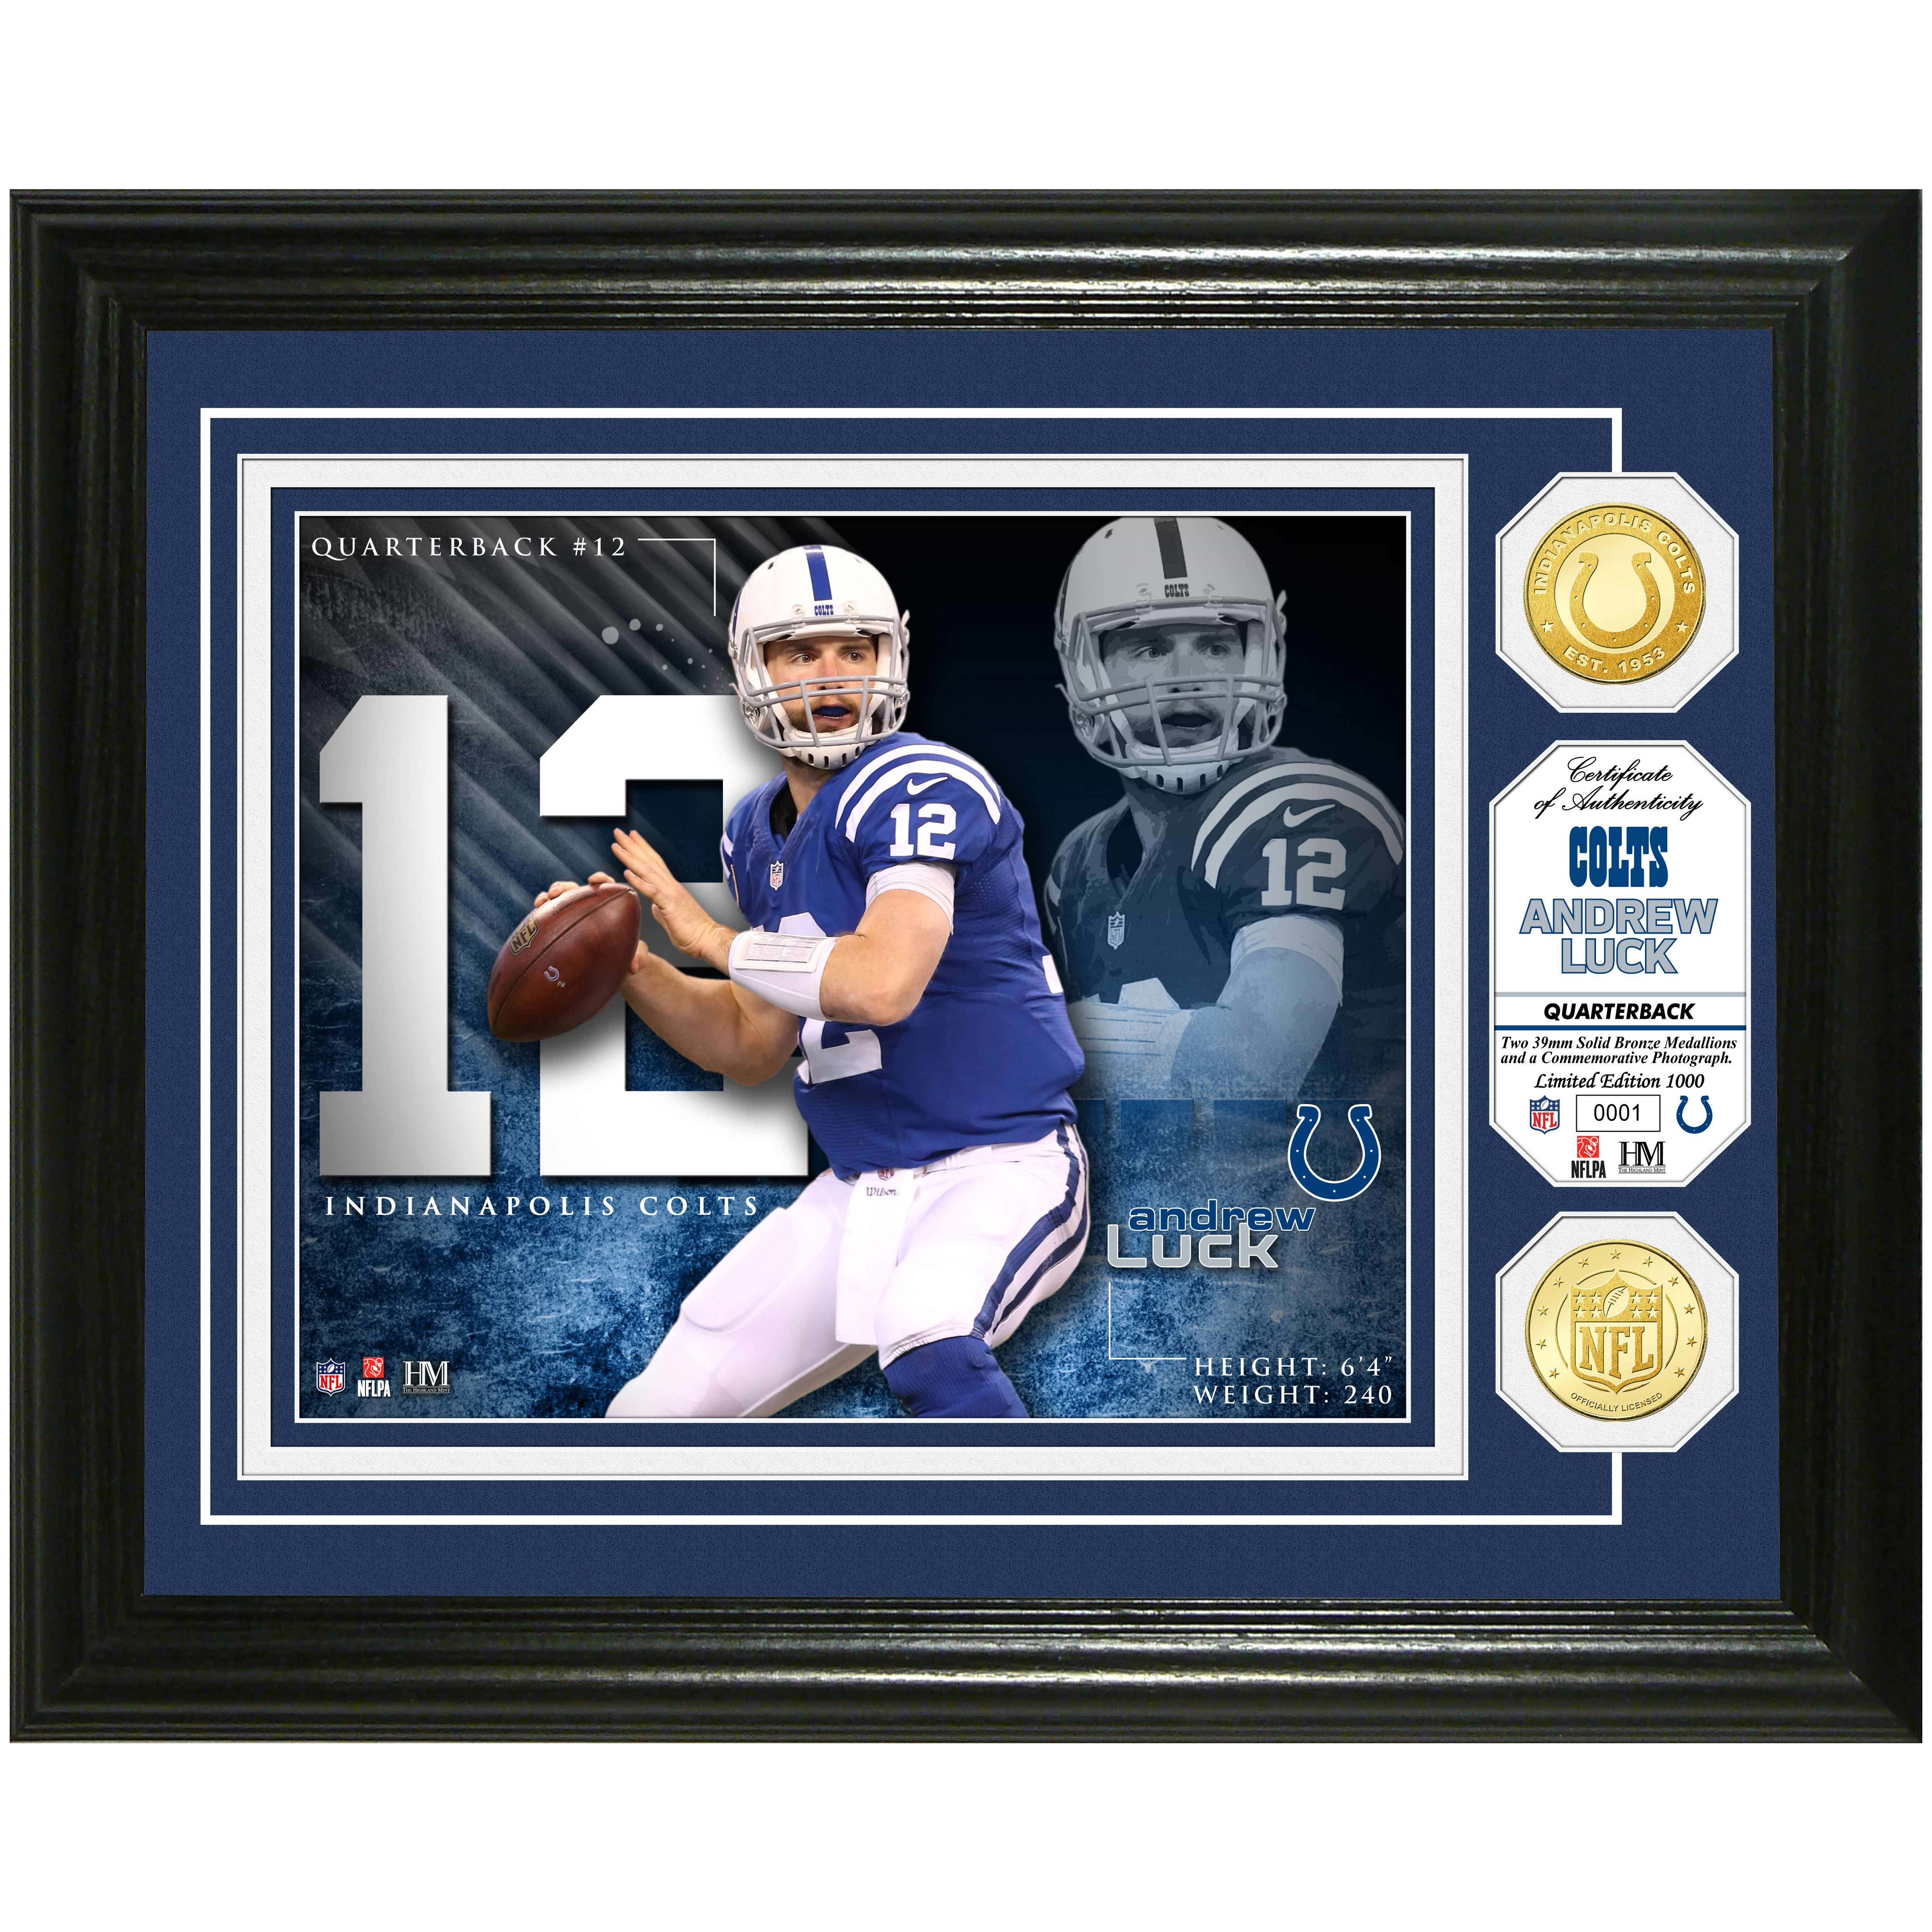 "andrew luck Indianapolis Colts Highland Mint 13"" x 16"" Player Photo Mint & Coin Set - No Size"